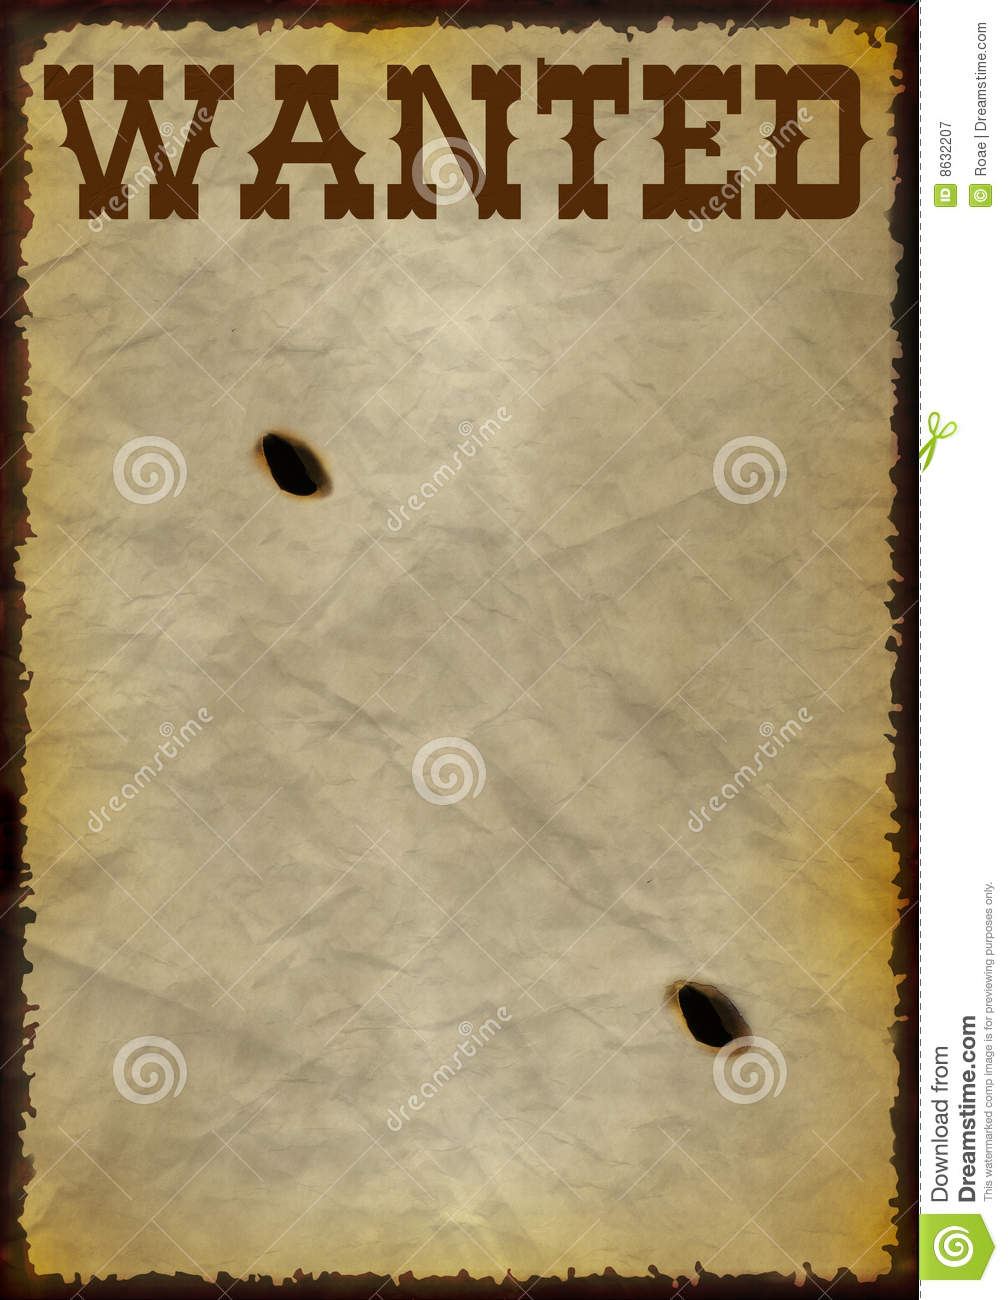 Wanted Frame Royalty Free Stock Photography Image 8632207